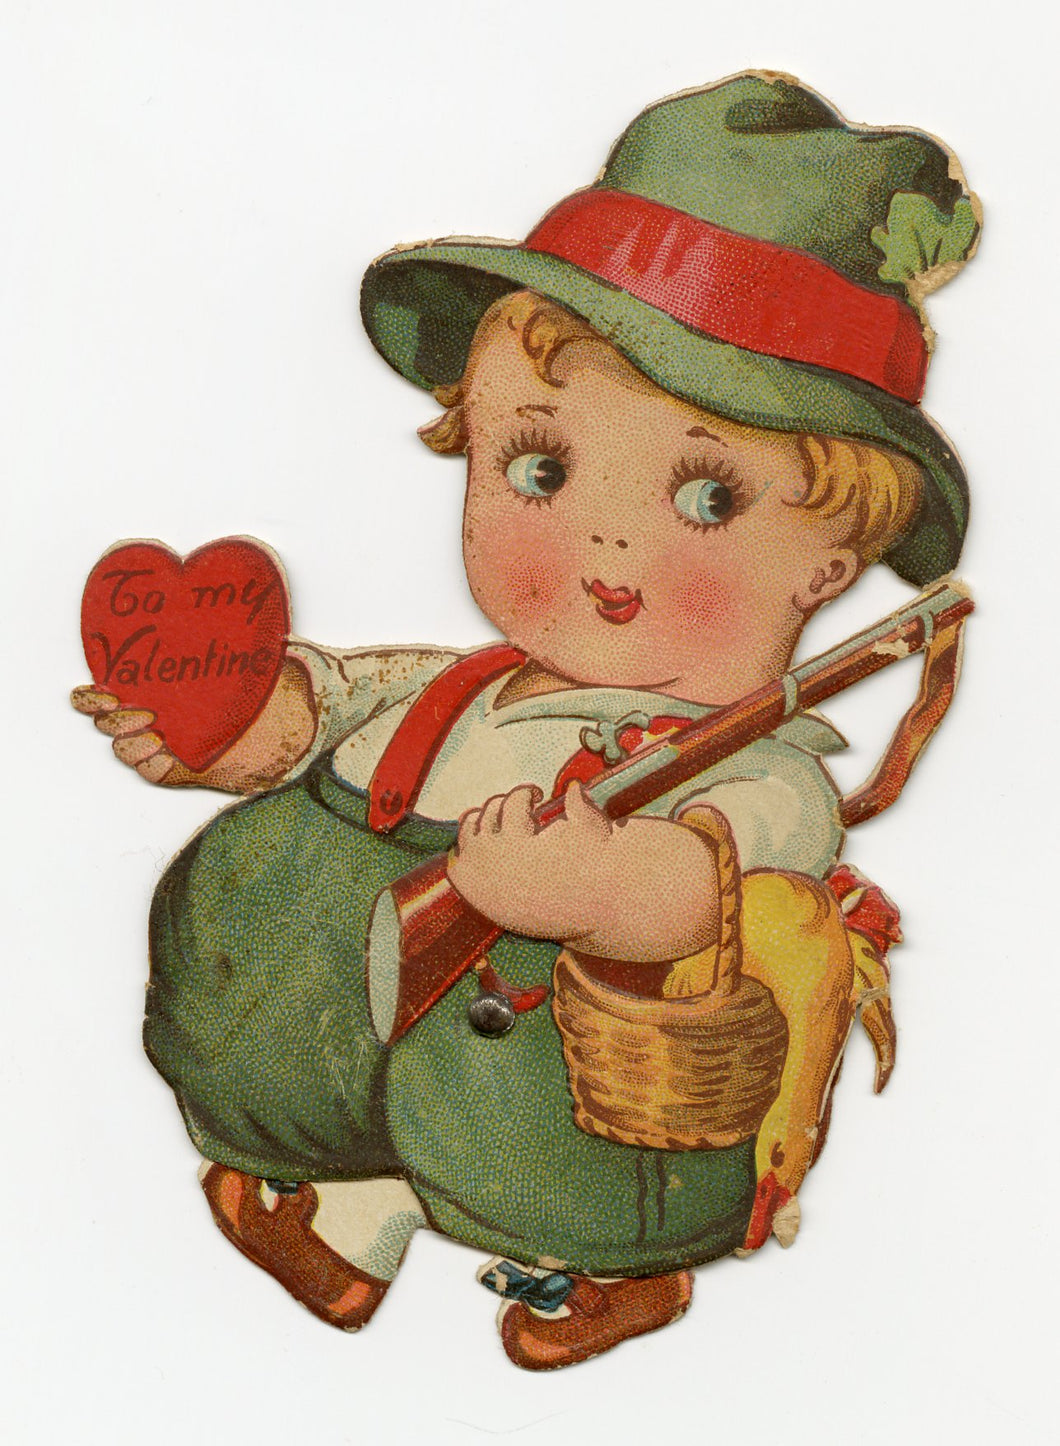 Antique MECHANICAL 1920's VALENTINE || Bavarian Boy with Moving Legs